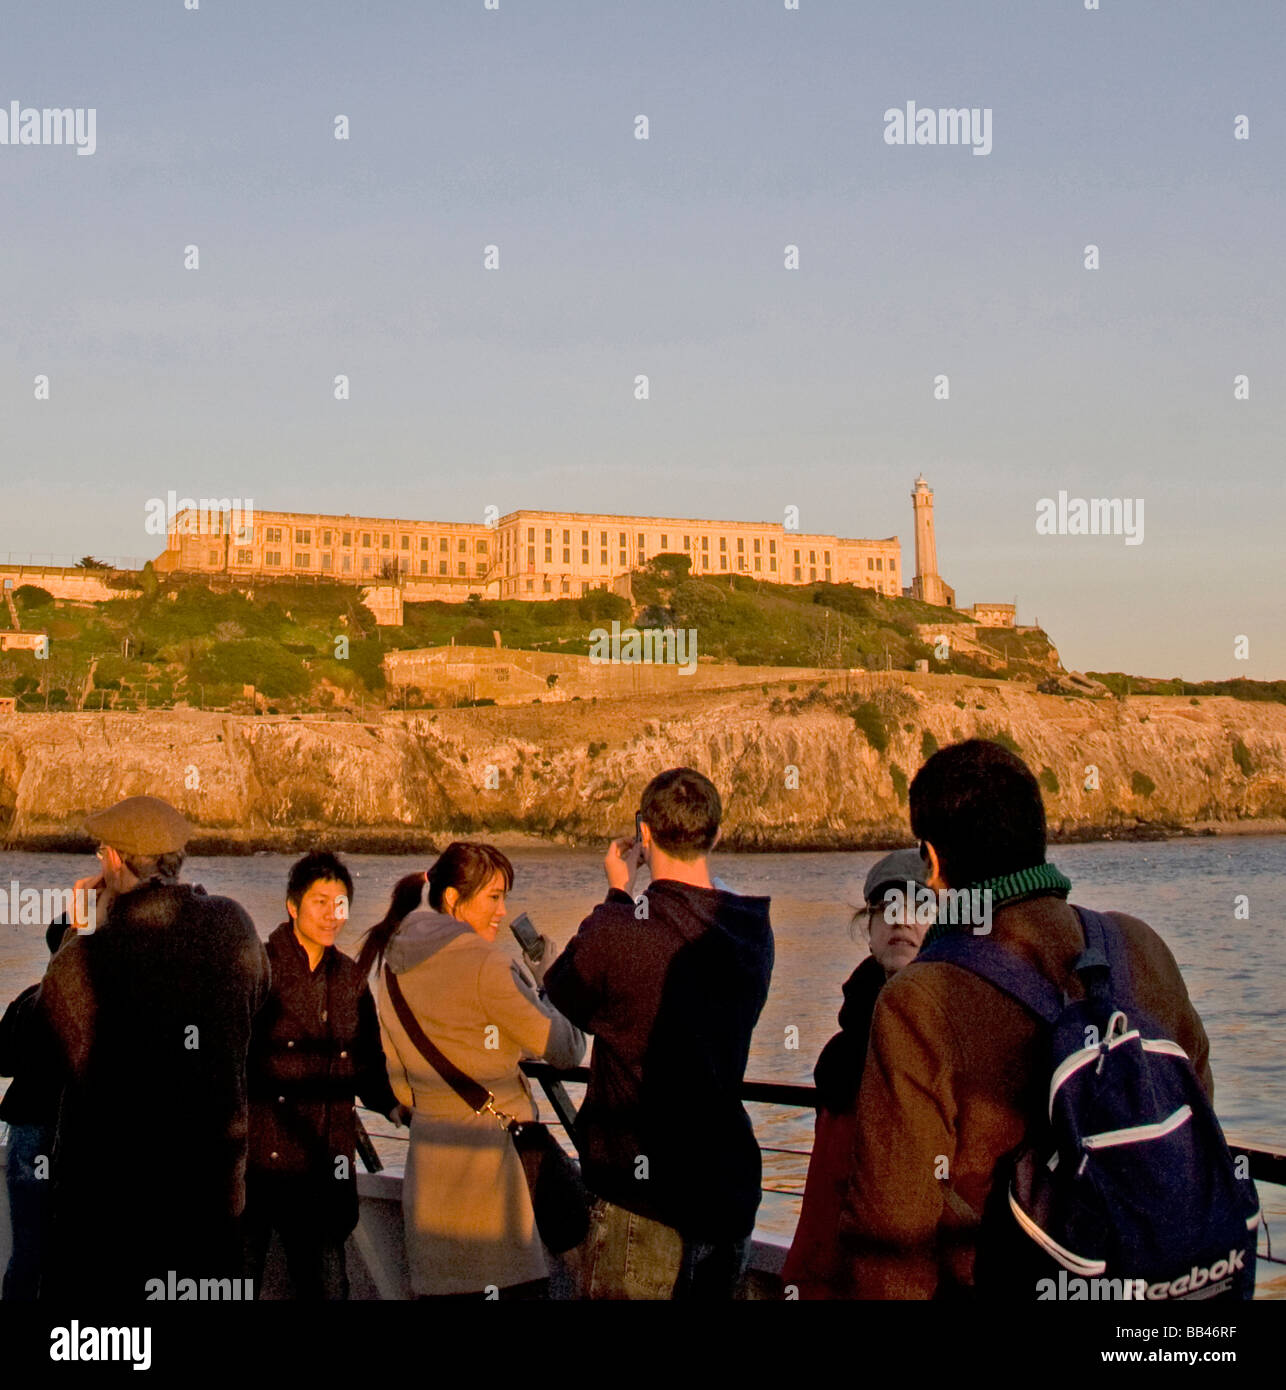 On a San Francisco Bay tour boat,a group of young Asian tourists , photograph Alcatraz Island and prison - Stock Image